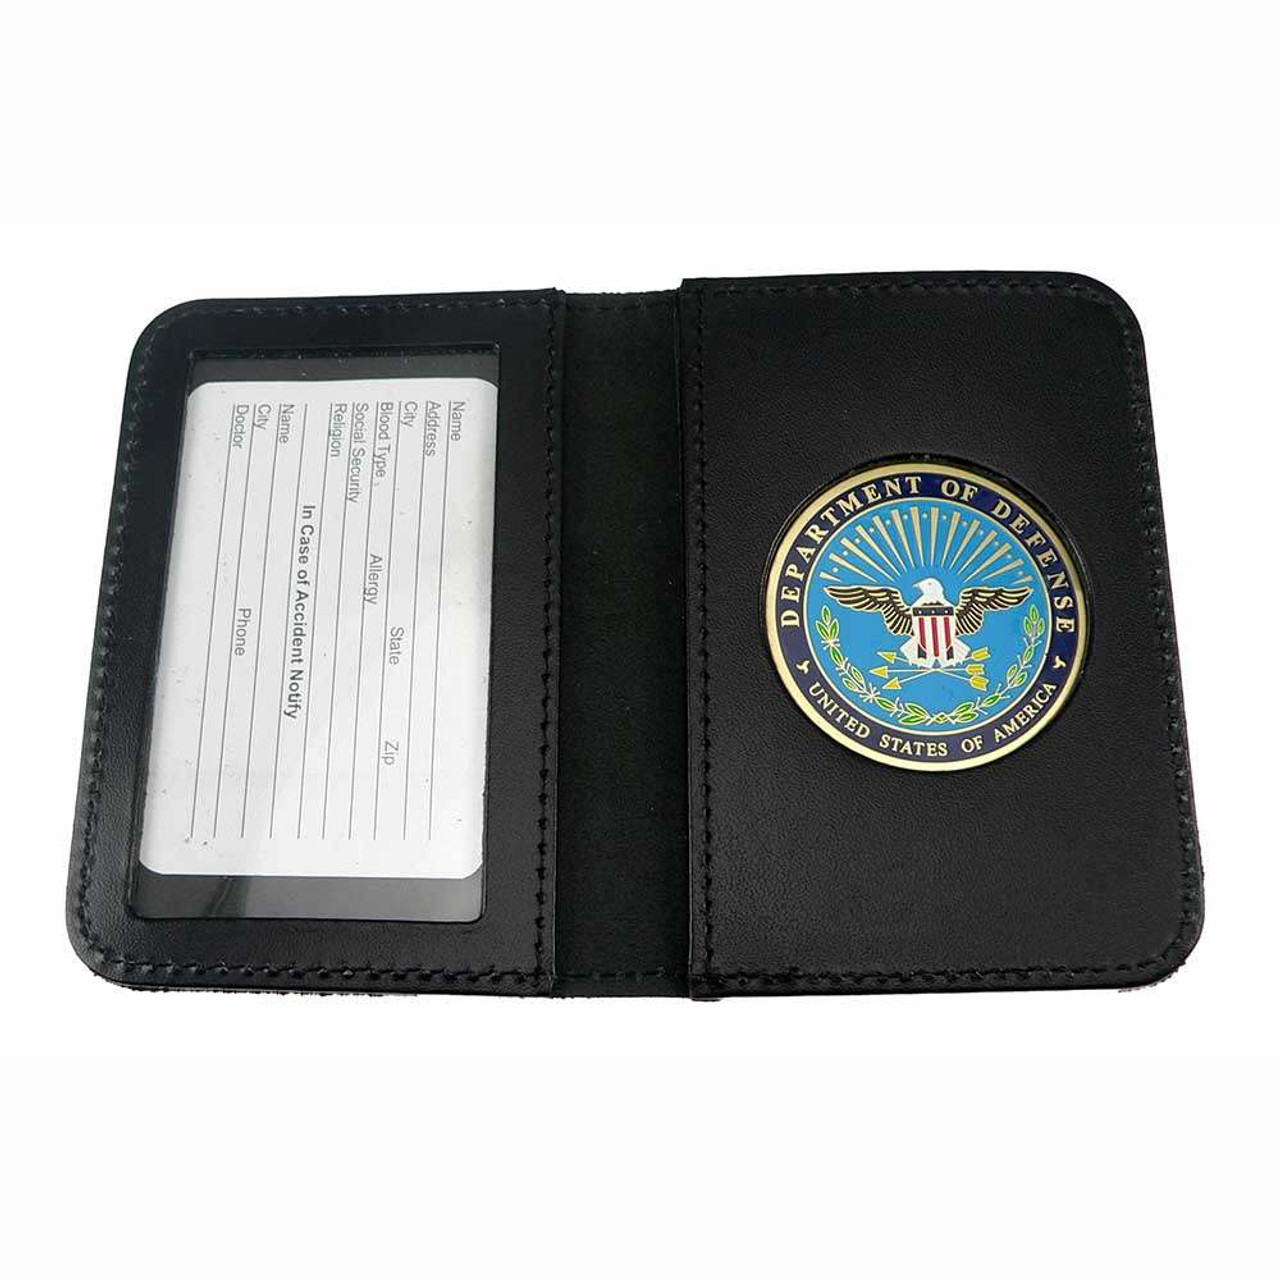 dod defense department leather single id card holder - Id Card Holder